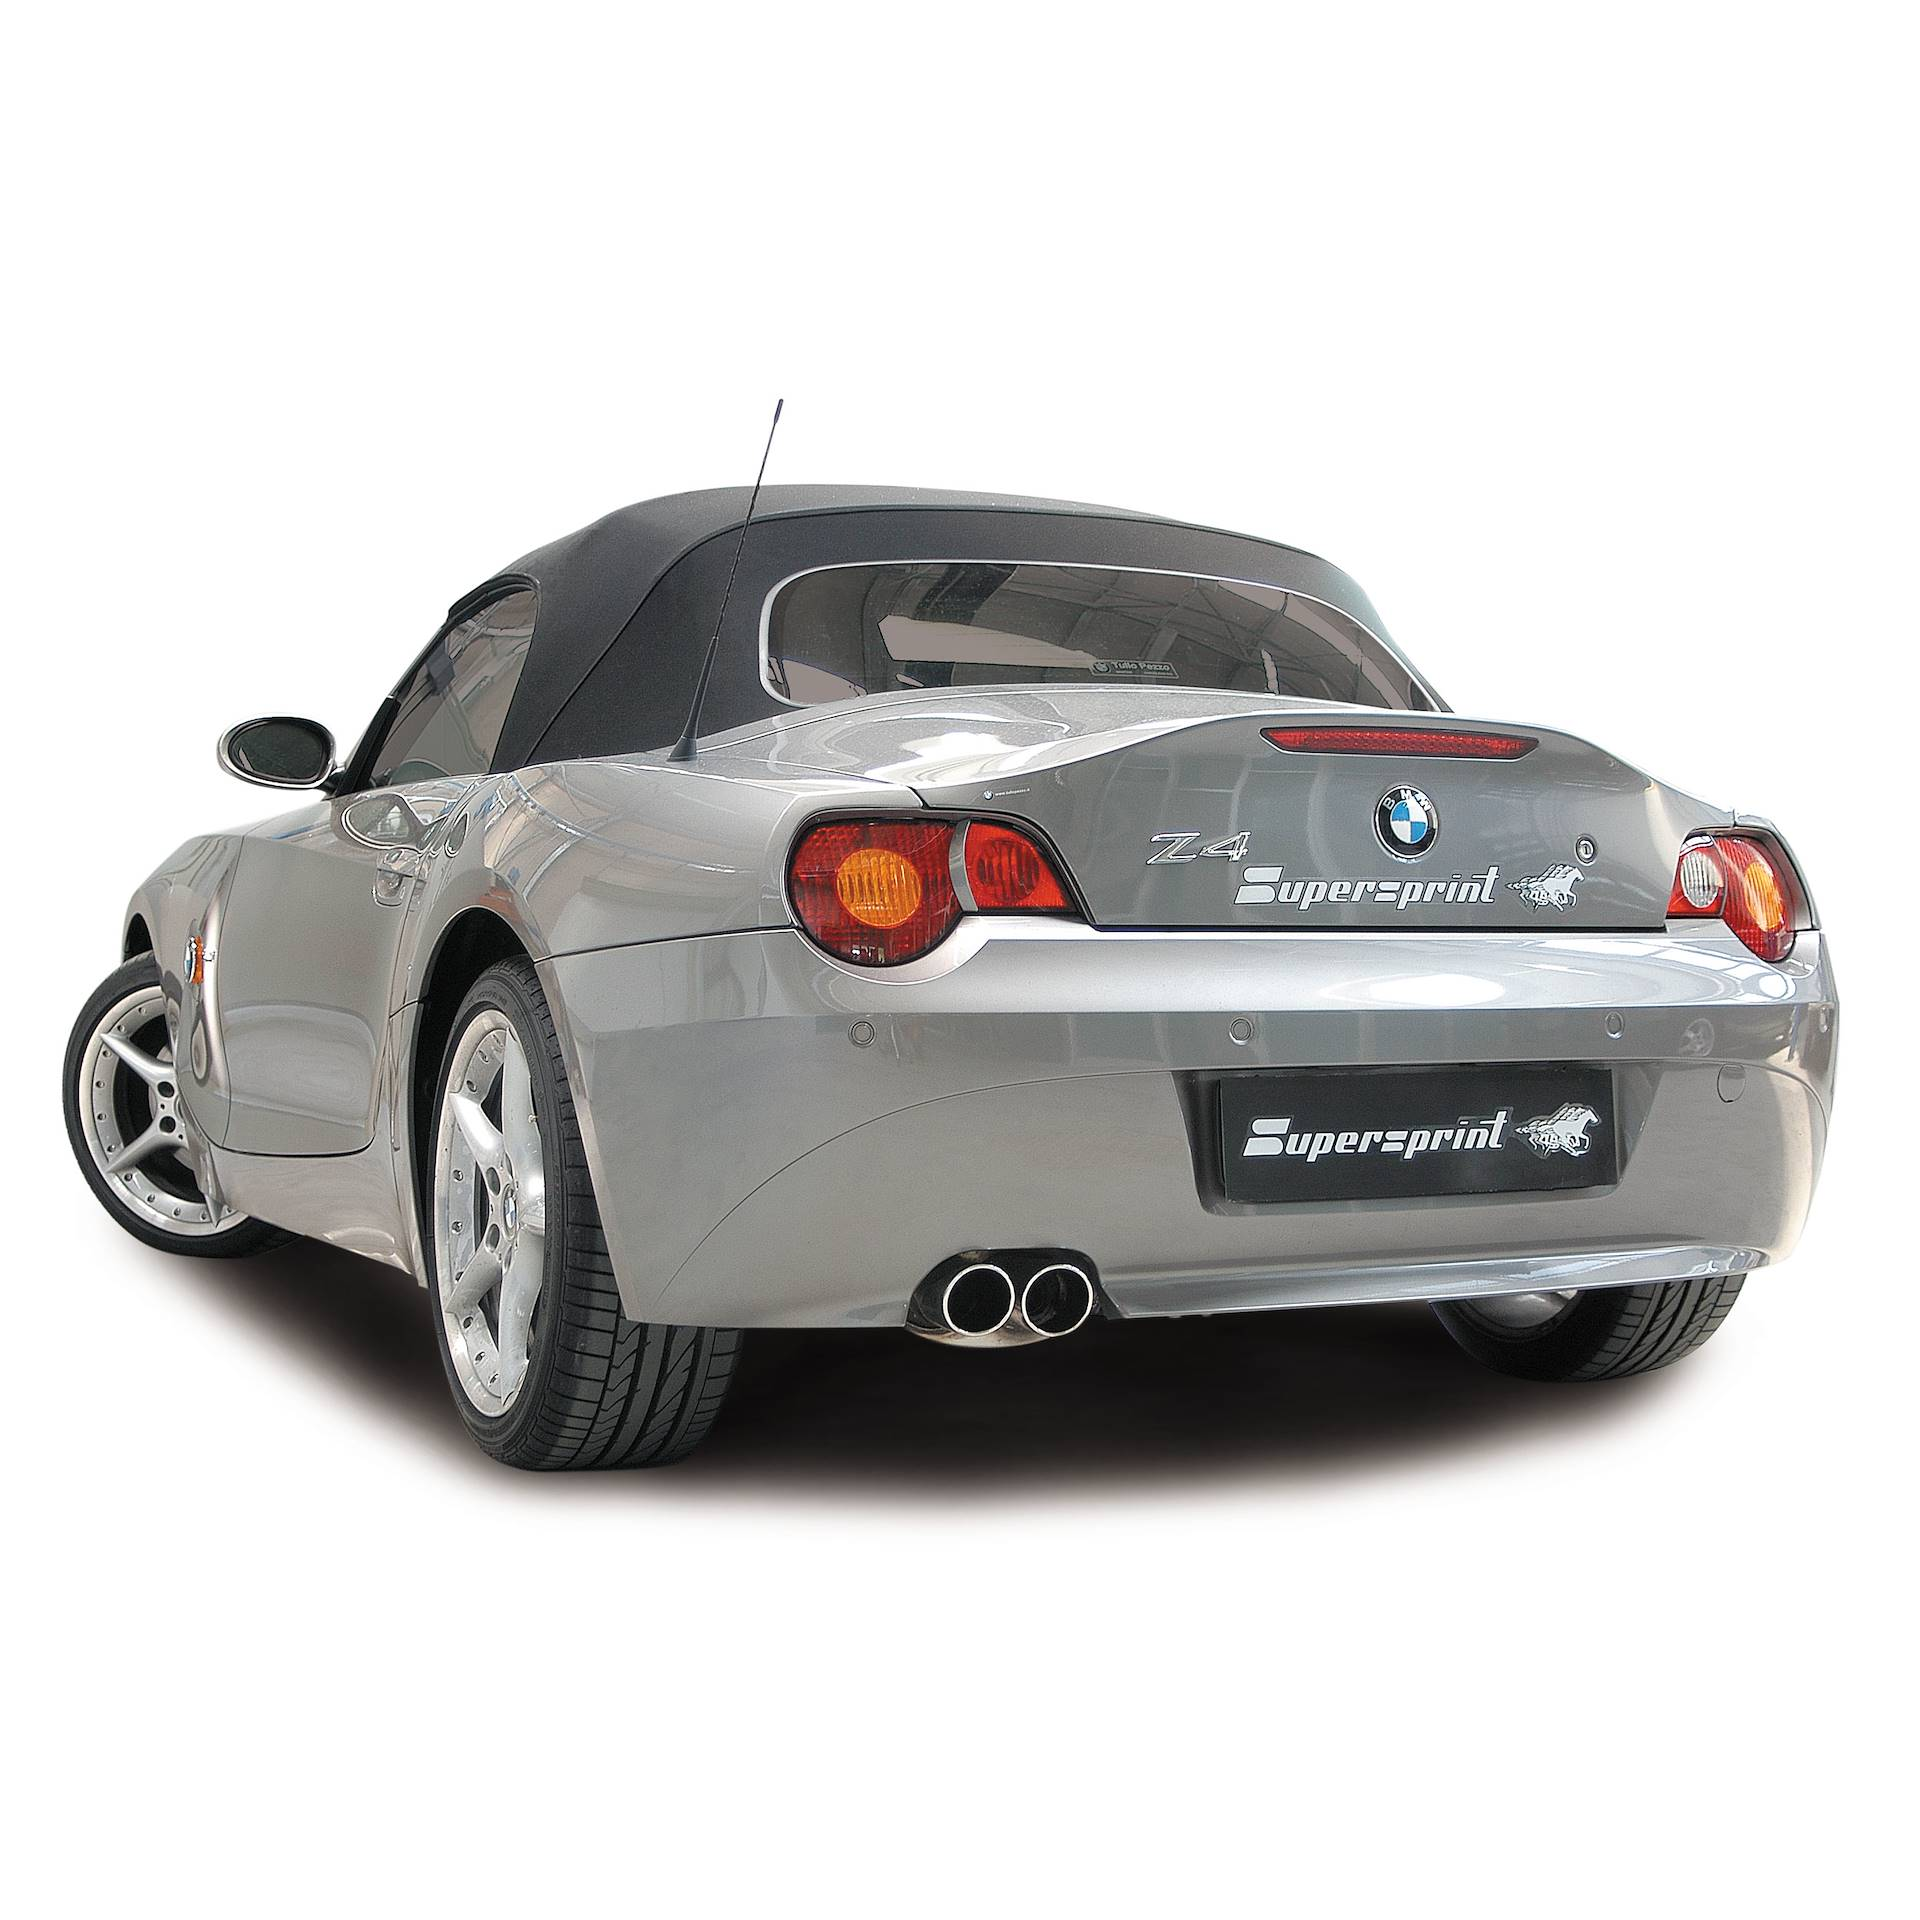 BMW - BMW Z4 Roadster LHD 2.2i (170 Hp) ' 04 -> ' 05